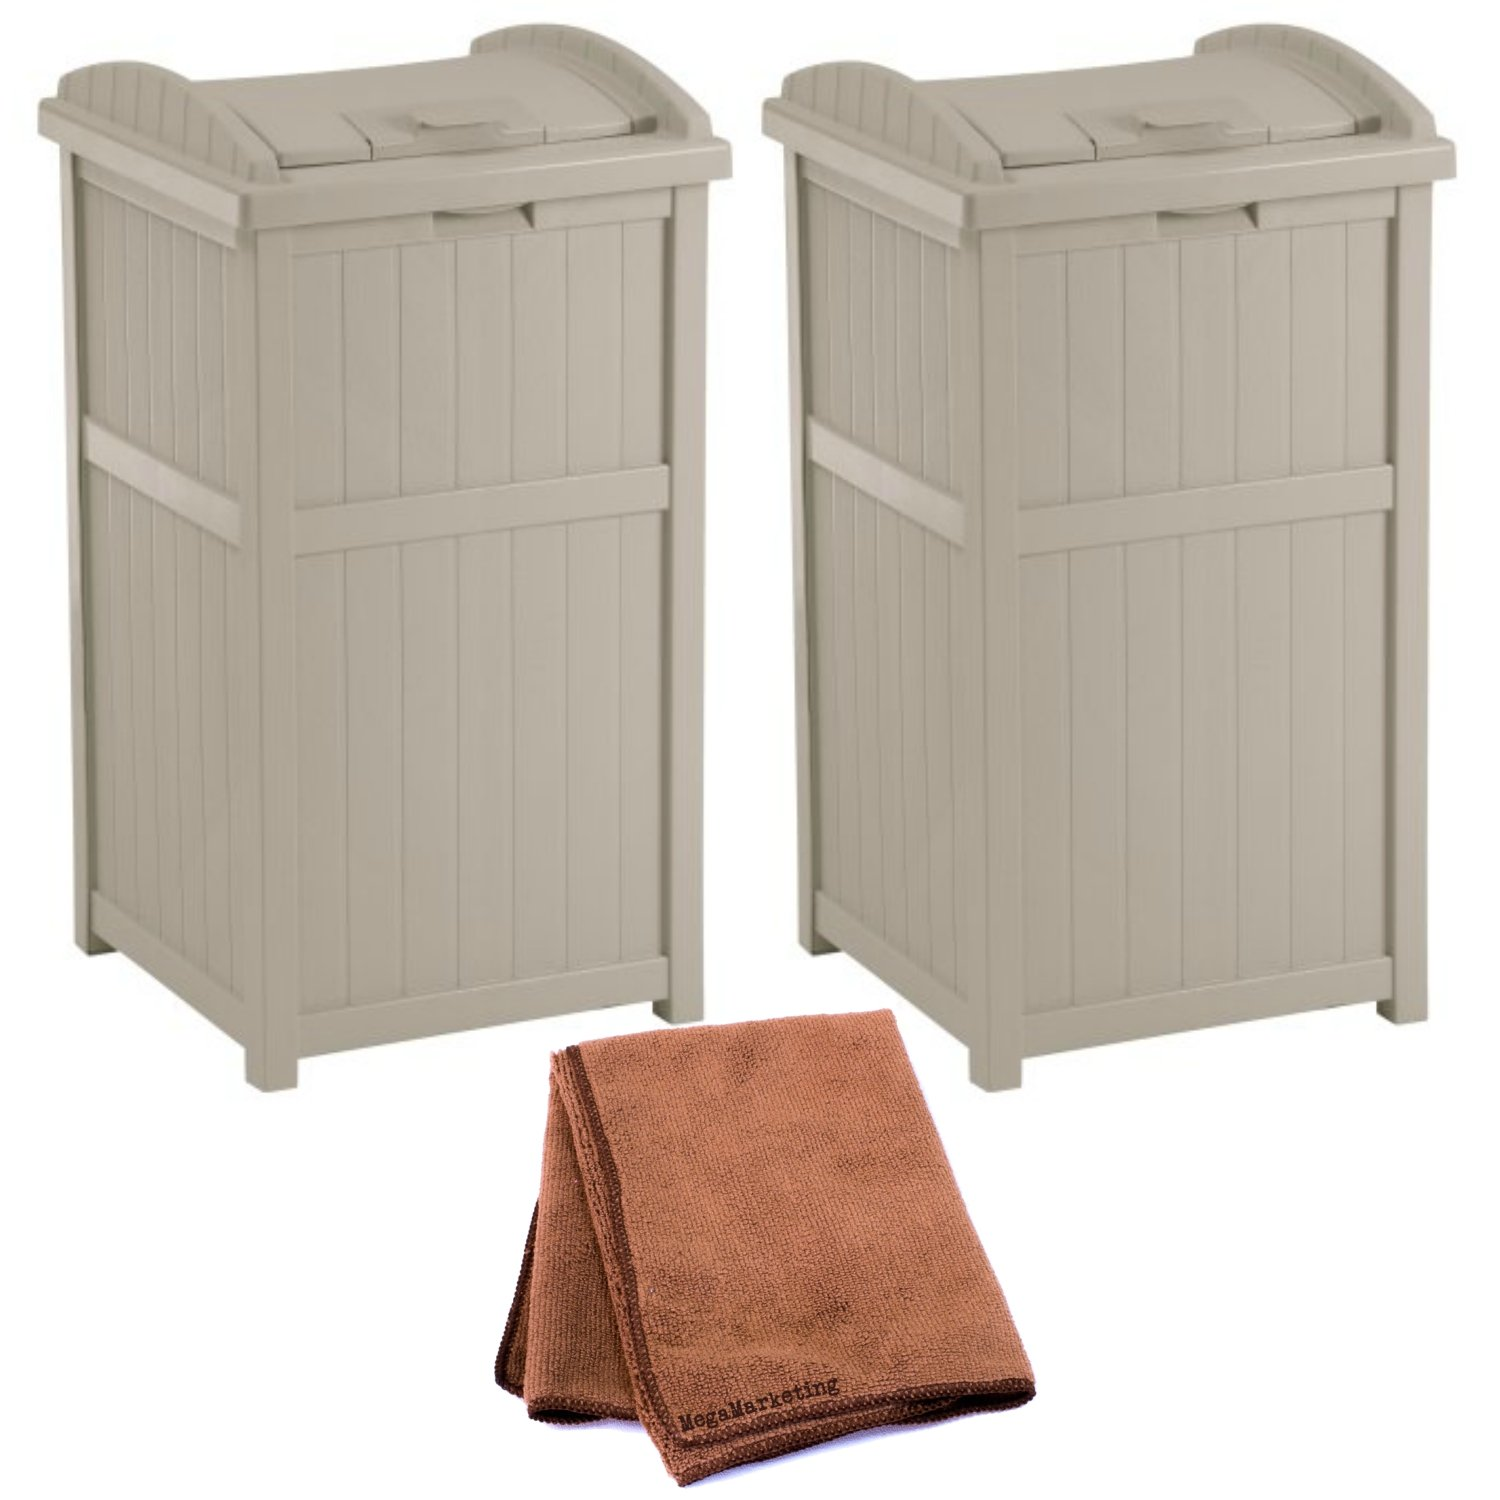 Suncast GH1732 Outdoor Trash Hideaway, Set of 2 with Cleaning Cloth